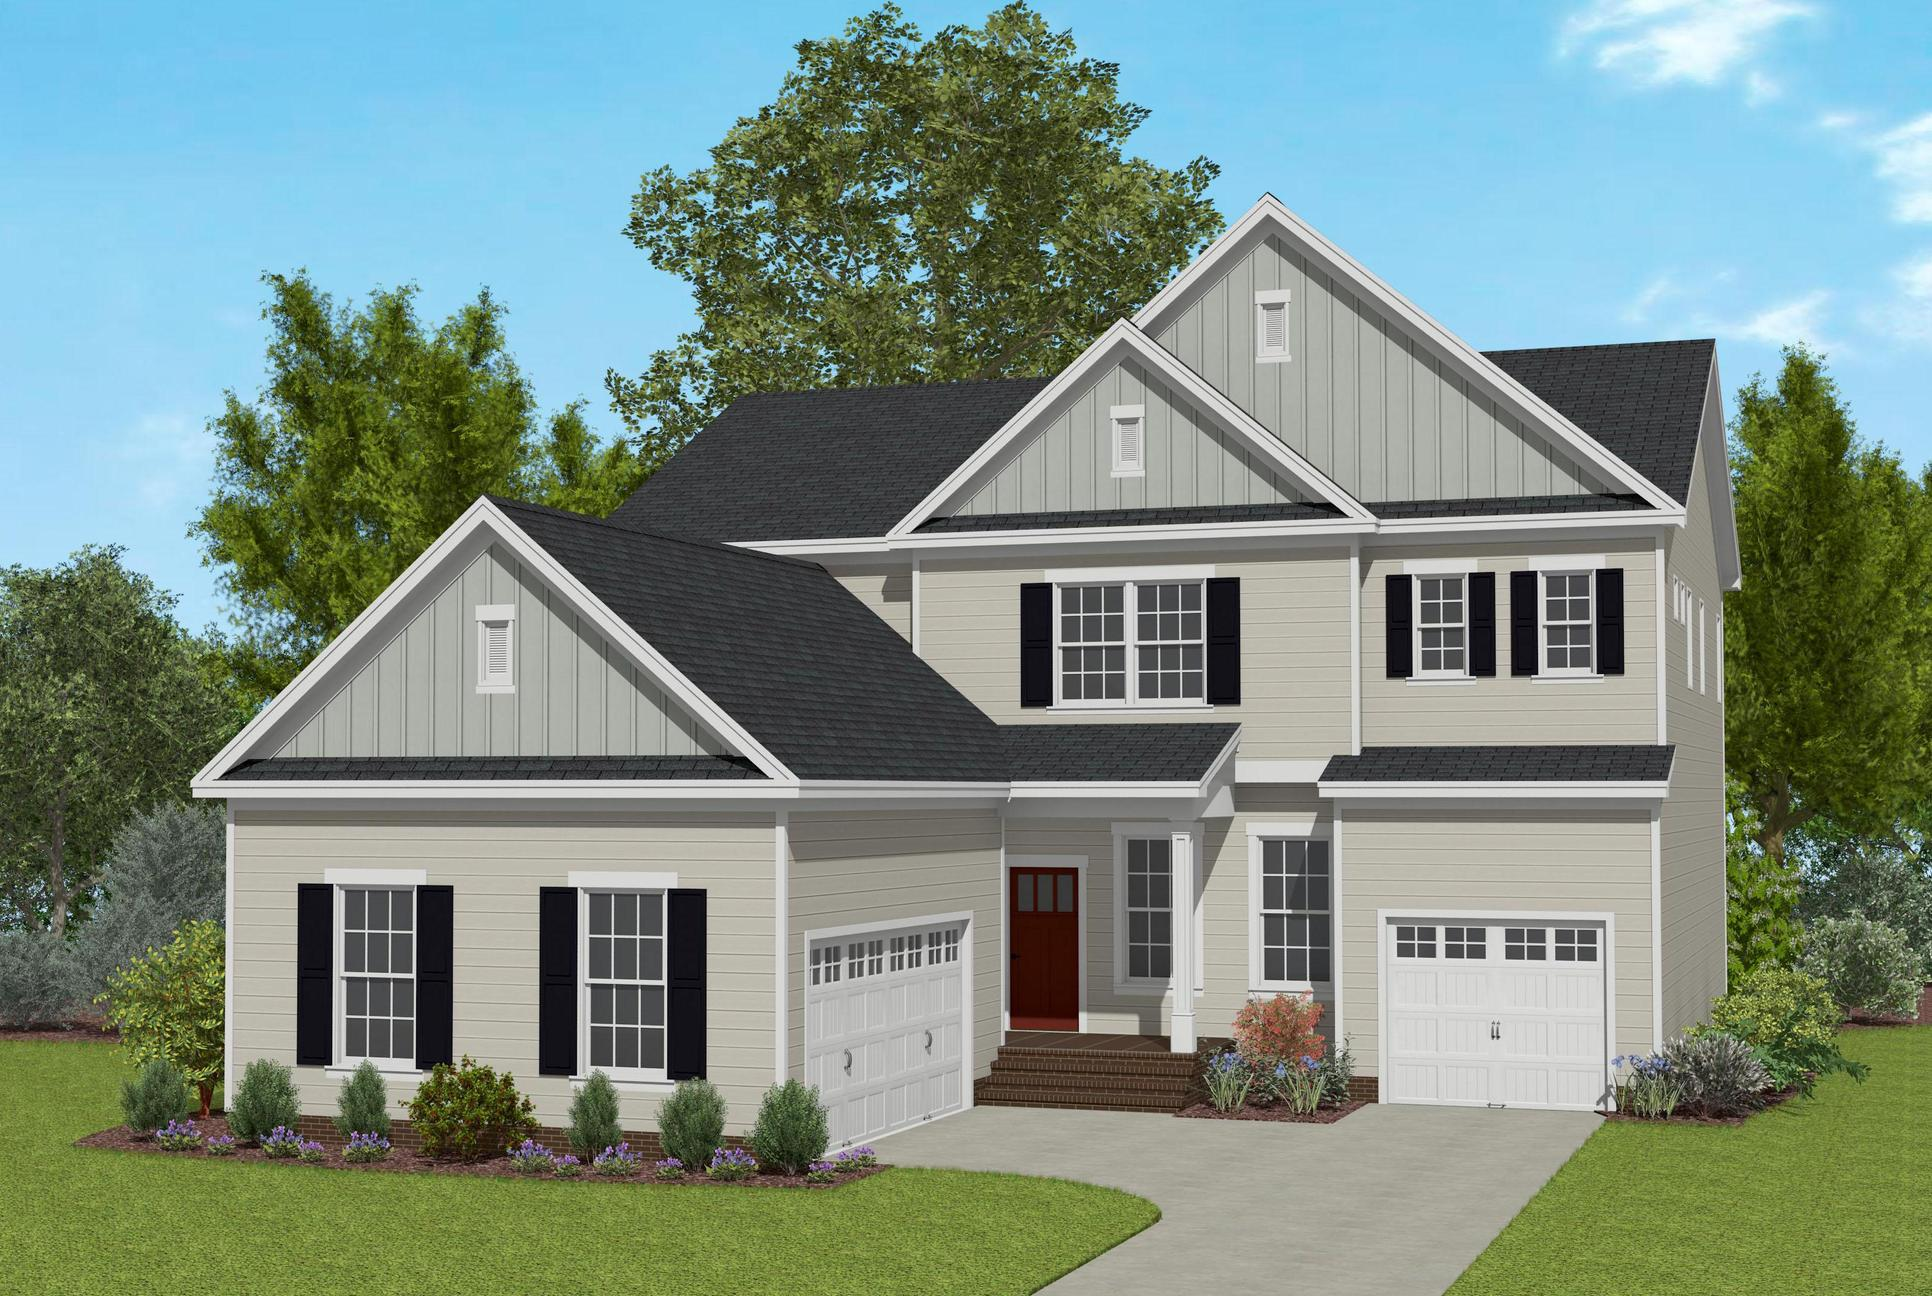 Beaufort:Elevation 1